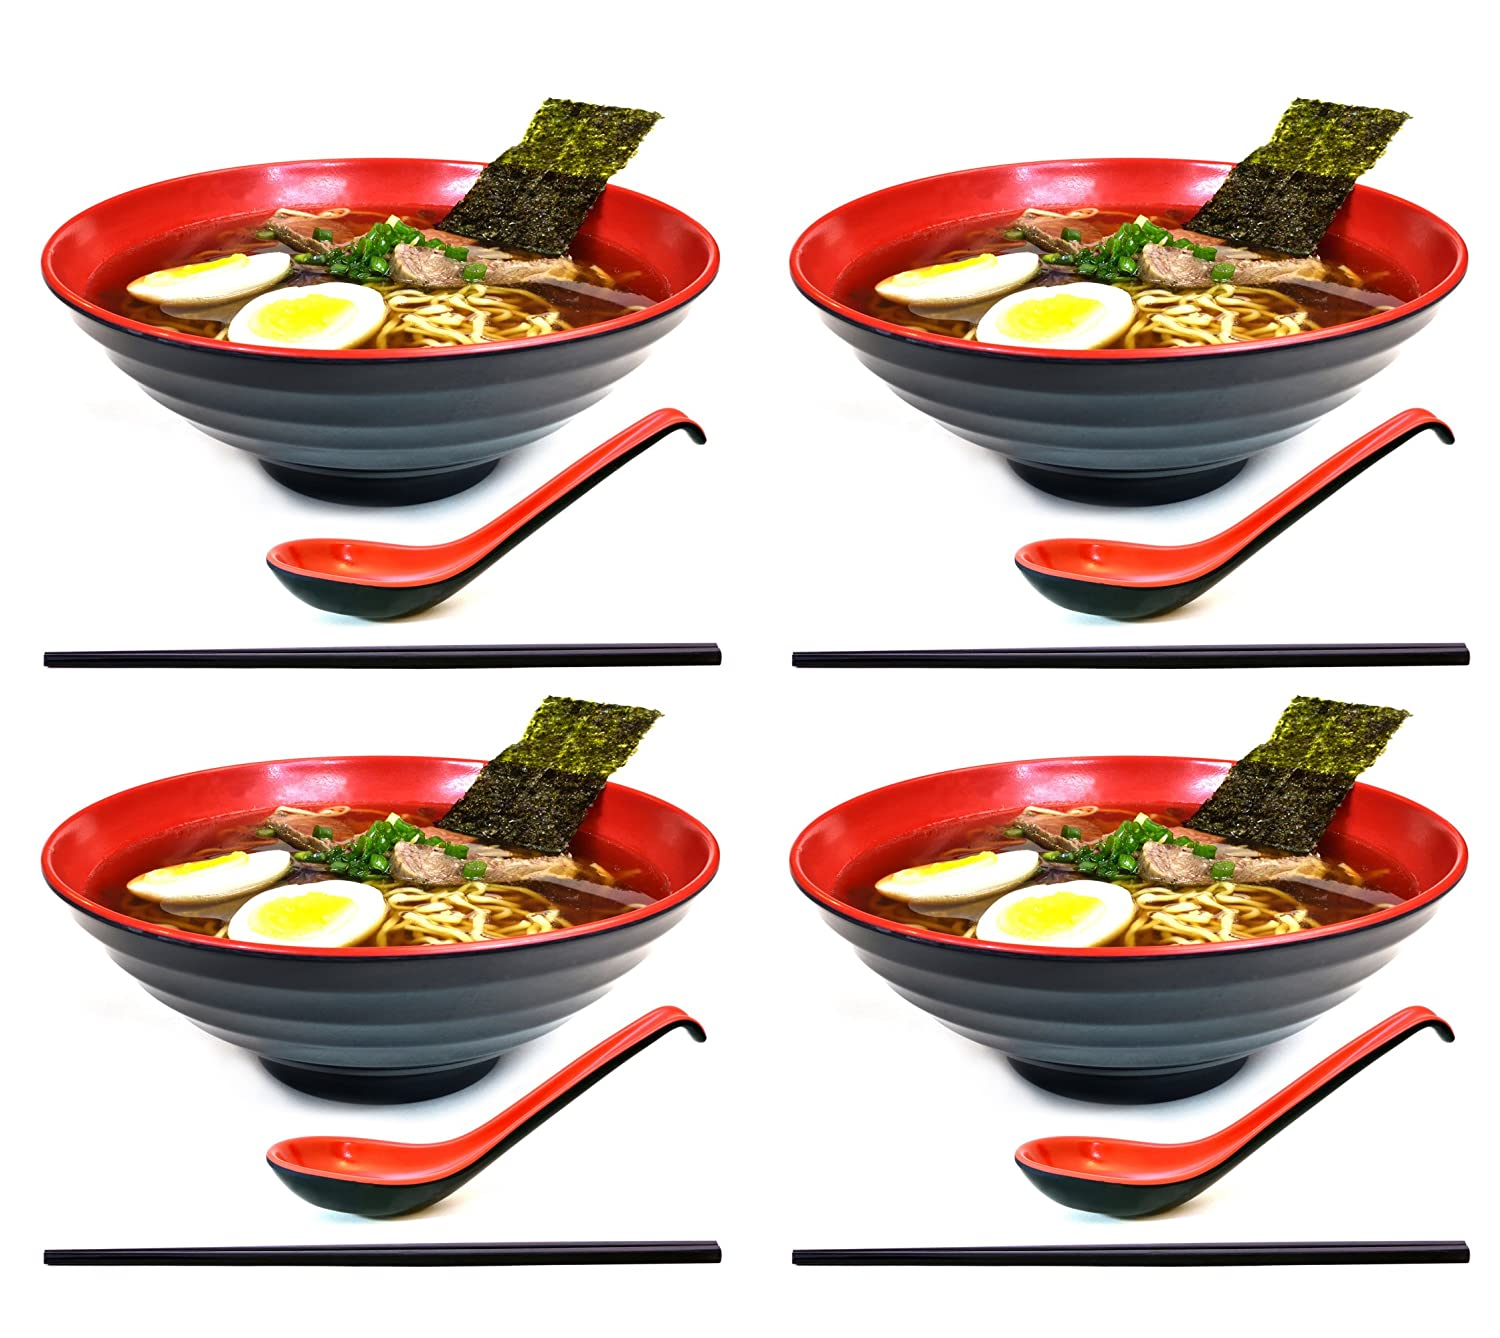 4 sets (12 piece) Large Japanese Ramen Noodle Soup Bowl Melamine Hard Plastic Dishware Set with Matching Spoon and Chopsticks for Udon Soba Pho Asian Noodles (4, Red)